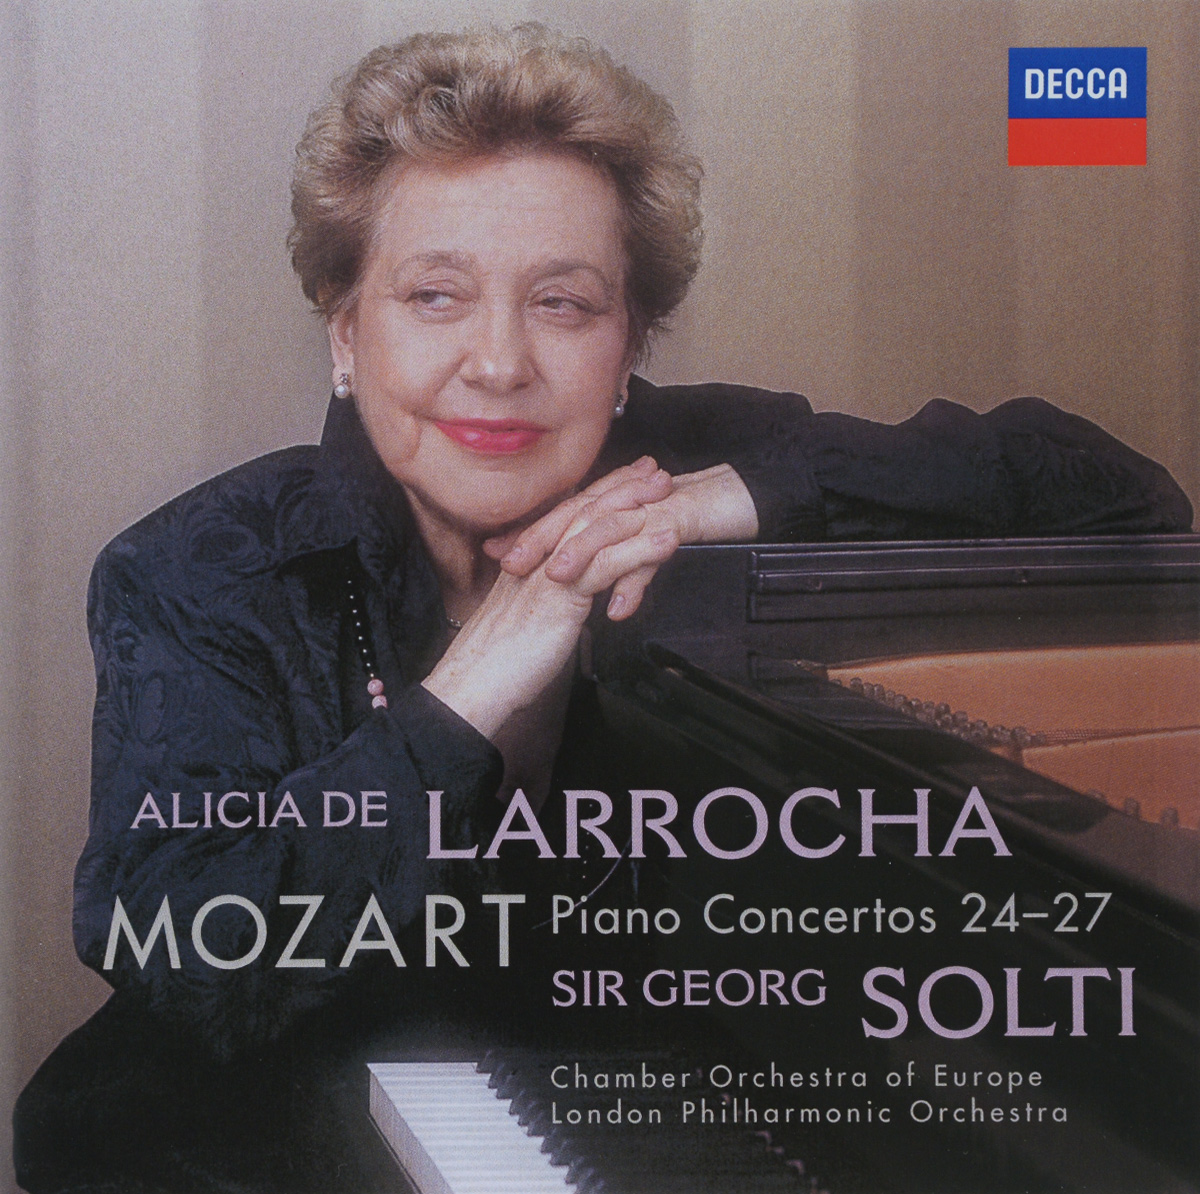 Алисия де Ларроча,Chamber orchestra of the Europe,Джордж Солти,London Philharmonic Orchestra Mozart. Alicia De Larrocha. Piano Concertos 24-27 (2 CD) юджин орманди леопольд стоковский the philadelphia orchestra сергей рахманинов rachmaninoff plays rachmaninoff the four piano concertos 2 cd